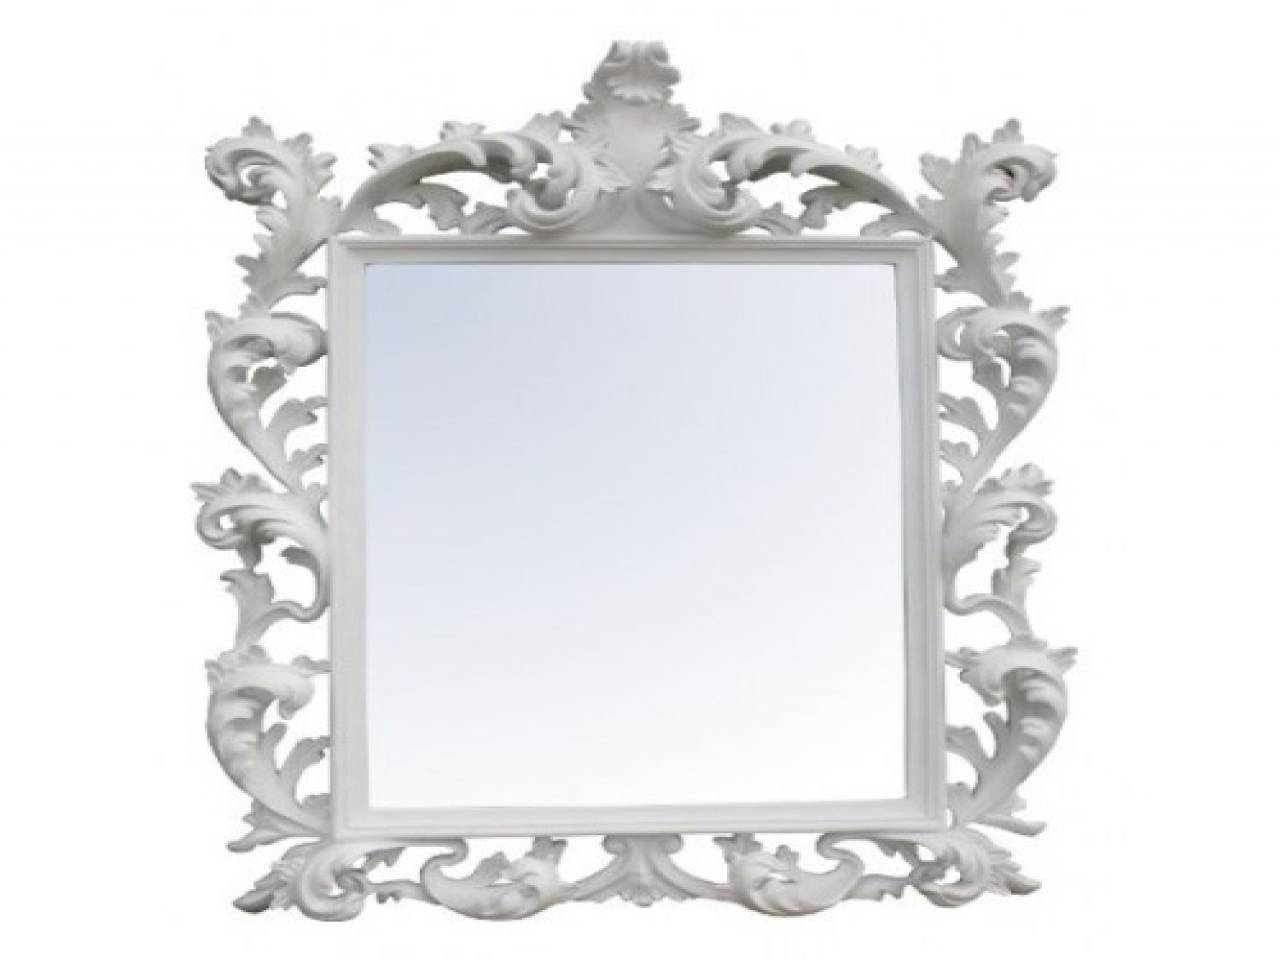 Large Oval Baroque Mirror Wall Acedf - Surripui with regard to Cheap Baroque Mirrors (Image 17 of 25)